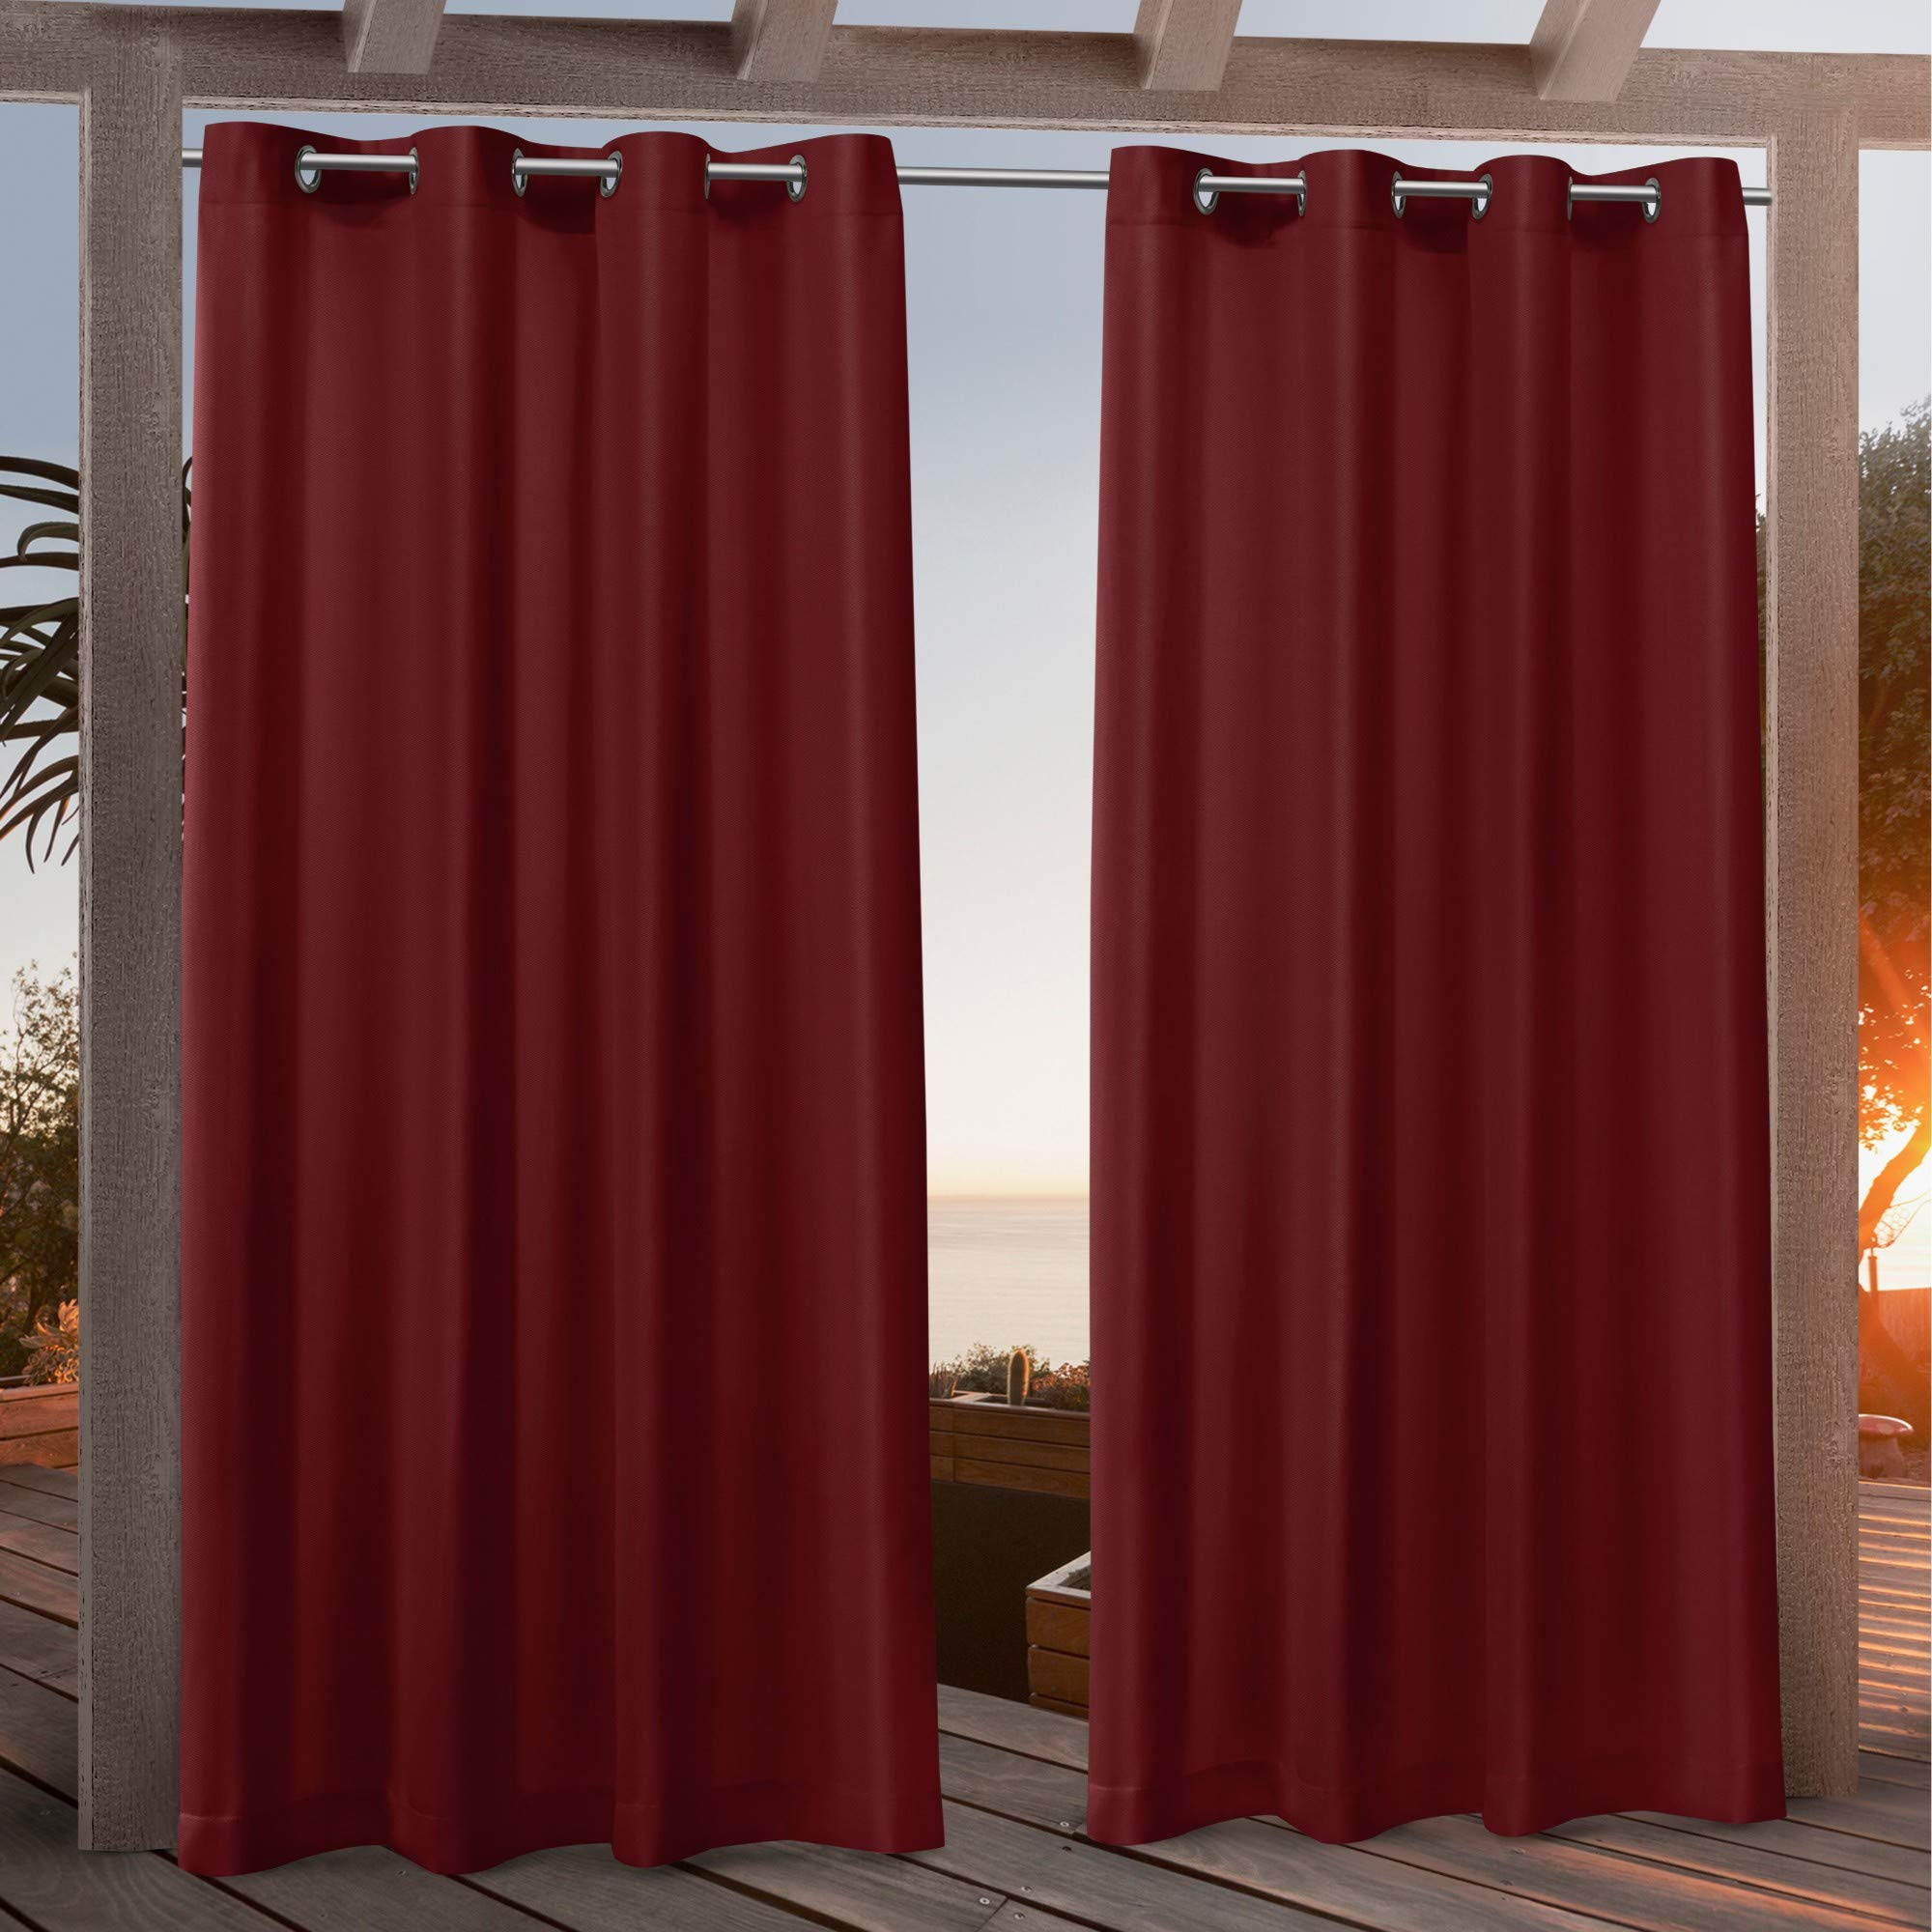 Nicole Miller Canvas Indoor/Outdoor Grommet Top Curtain Panel, 54x96, Red, 2 Piece